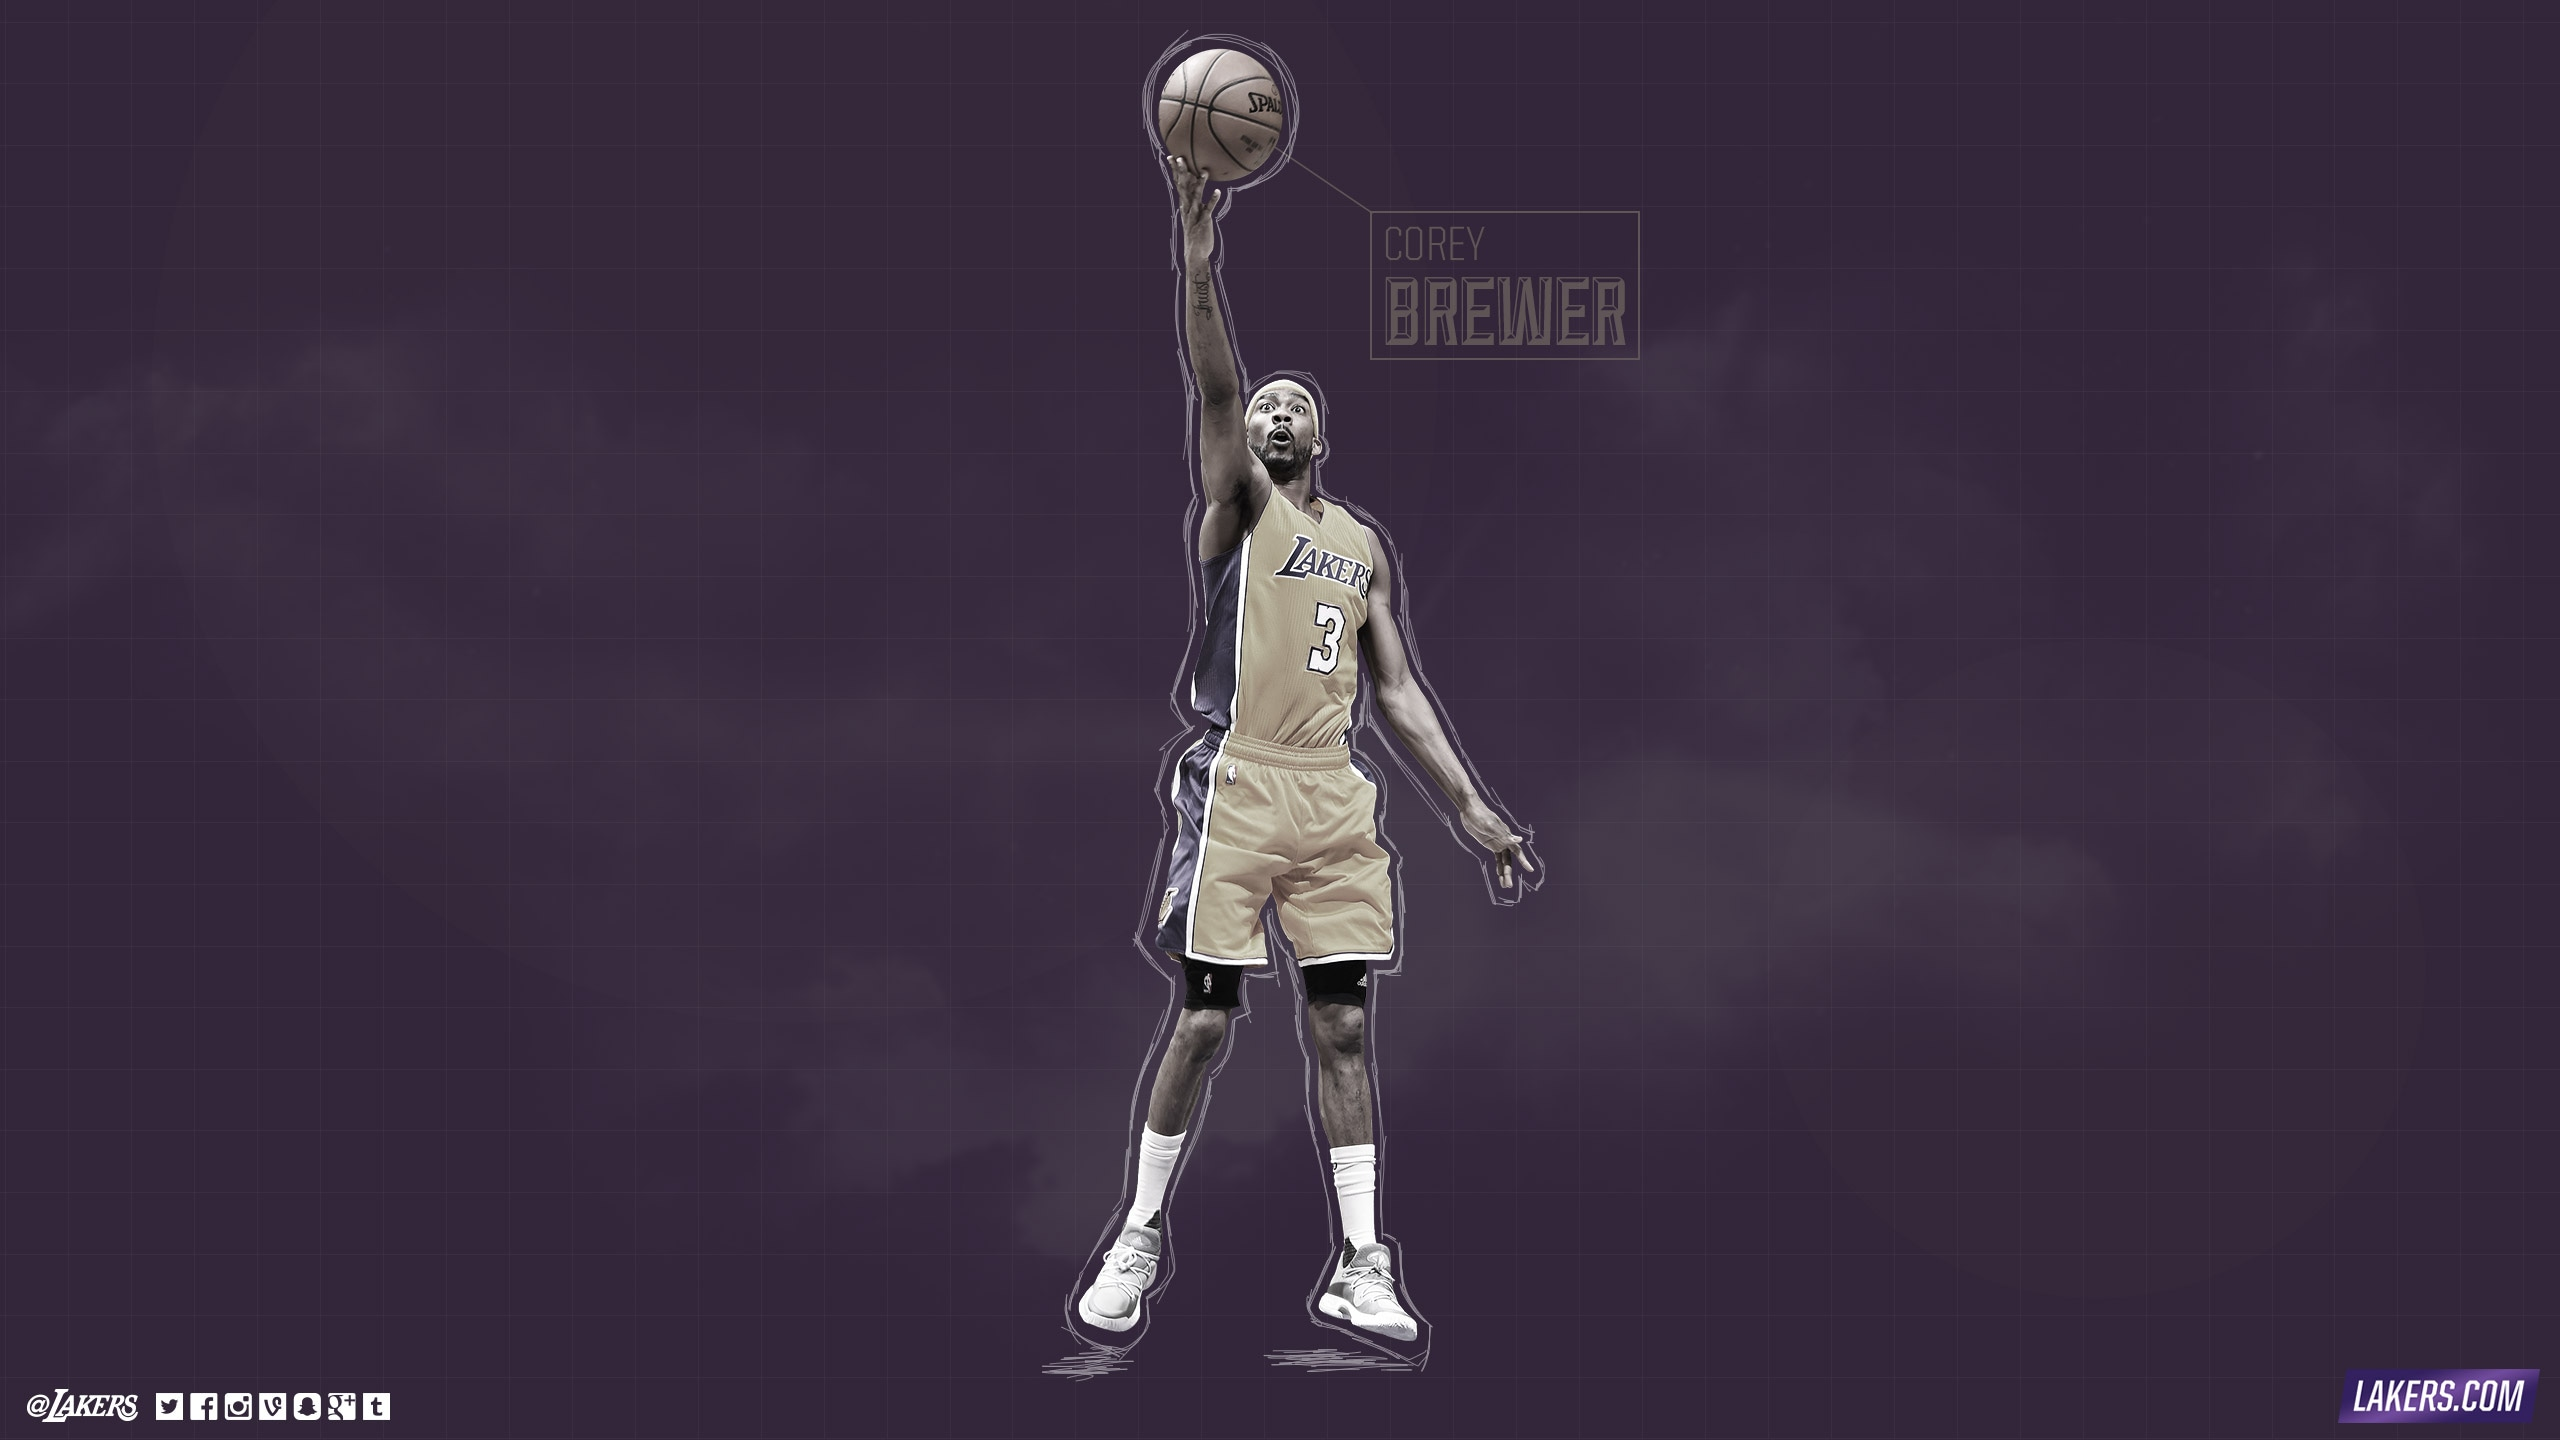 Corey Brewer Player Wallpaper